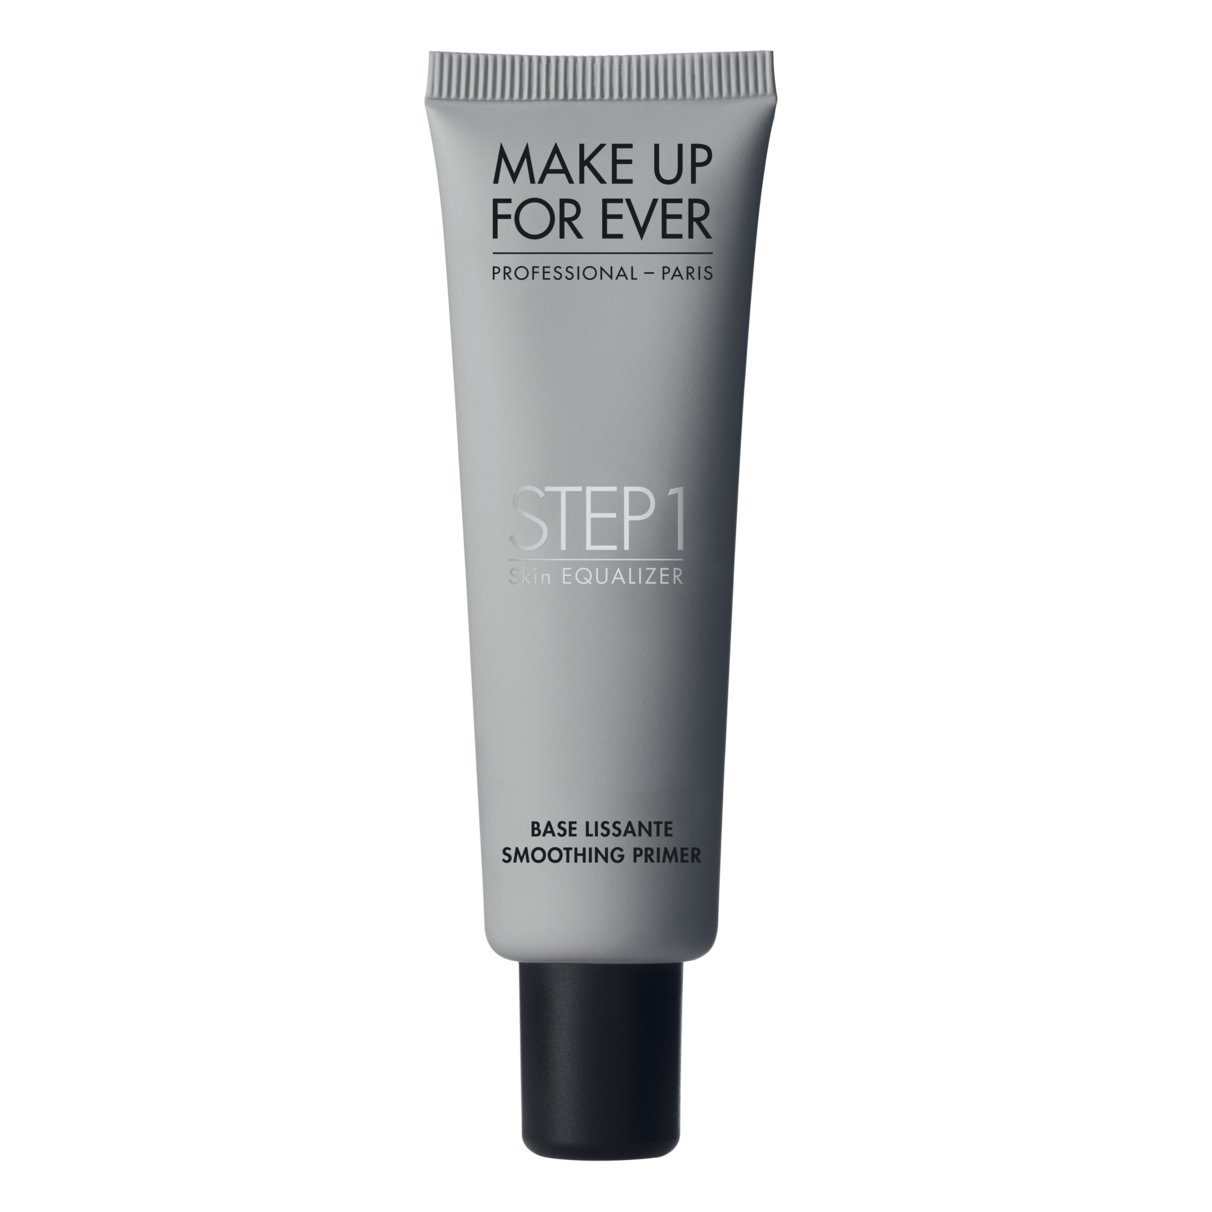 Veido nelygumus išlyginantis pagrindas Make Up For Ever Step 1 Skin Equalizer, 2 Smoothing Primer, 15 ml